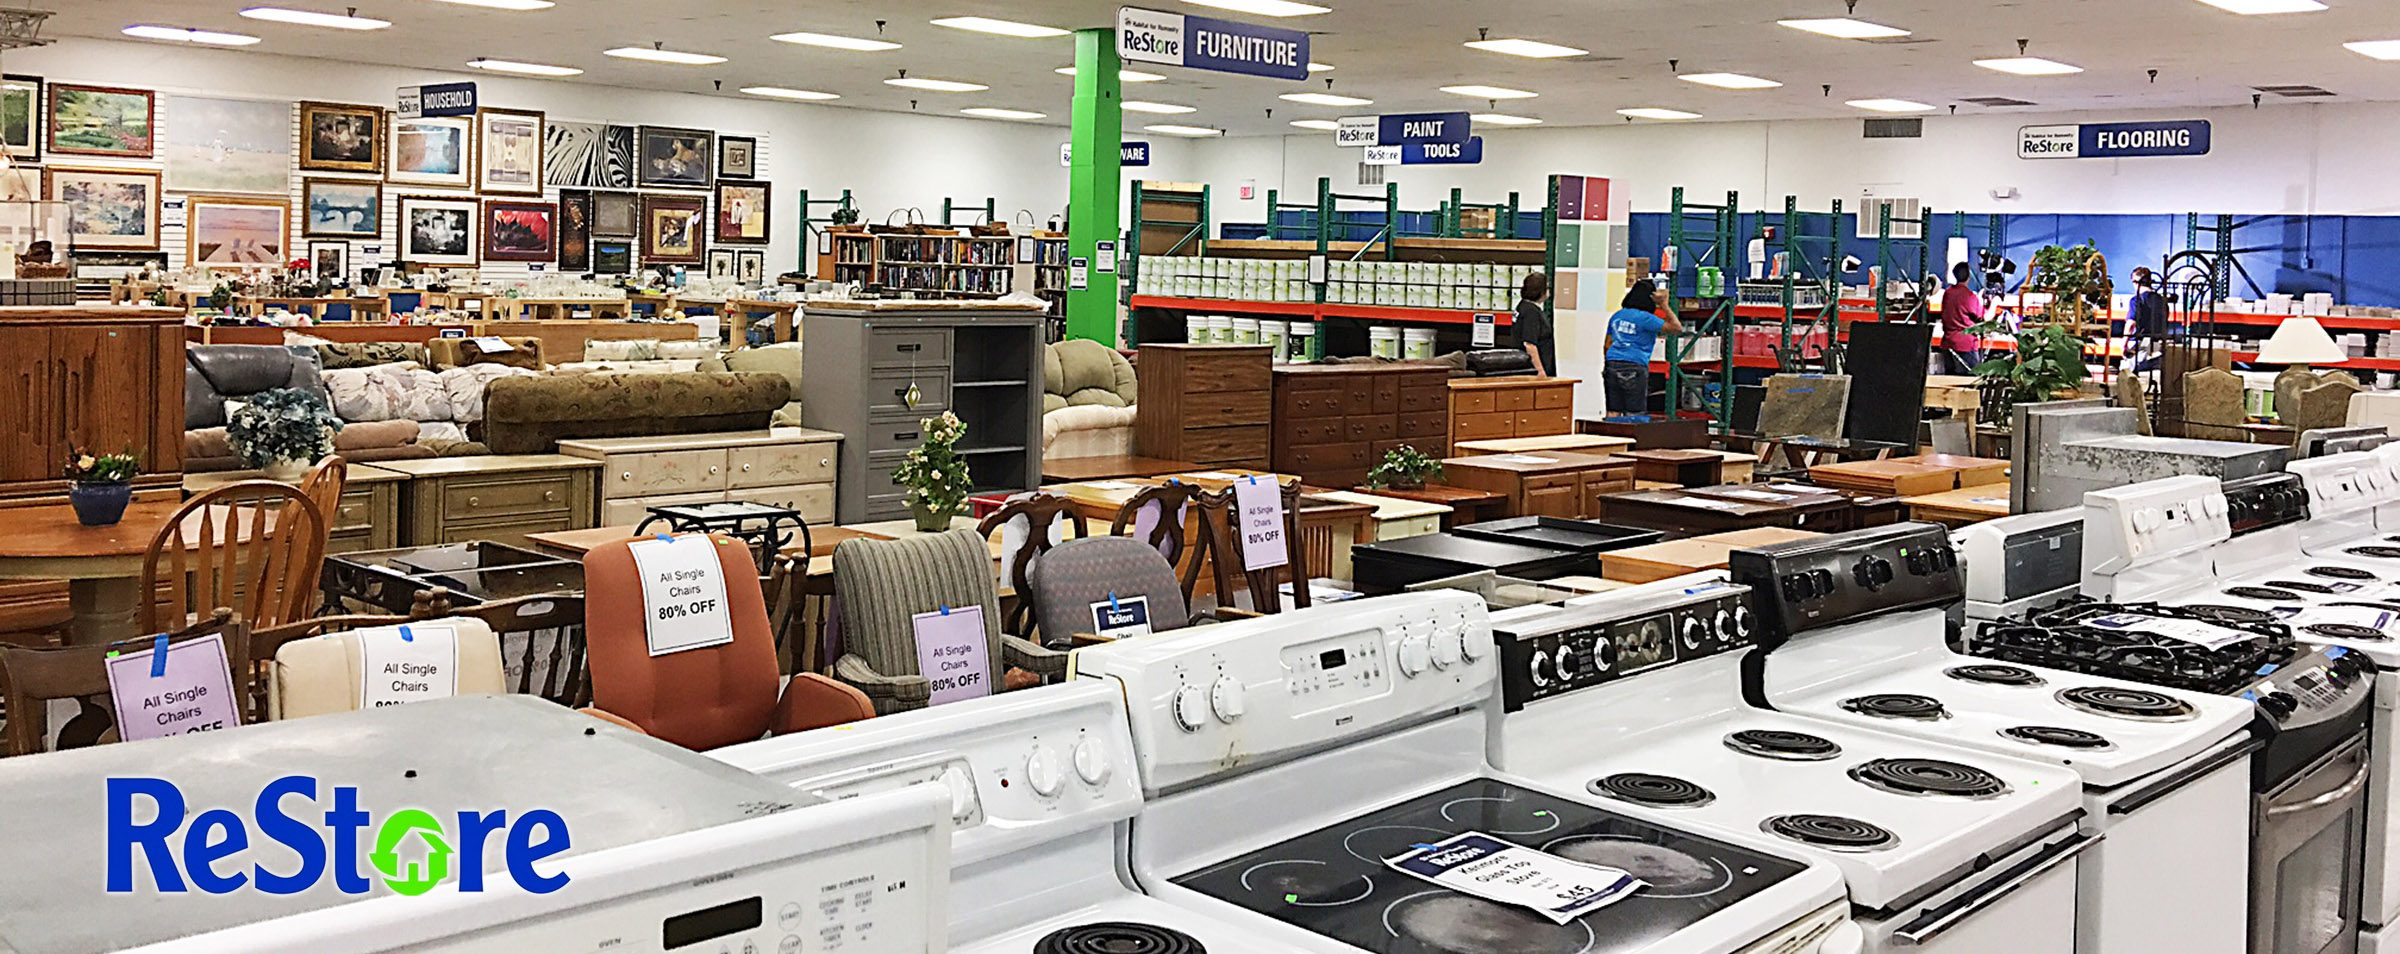 Habitat Restore Habitat For Humanity Hillsborough County Fl